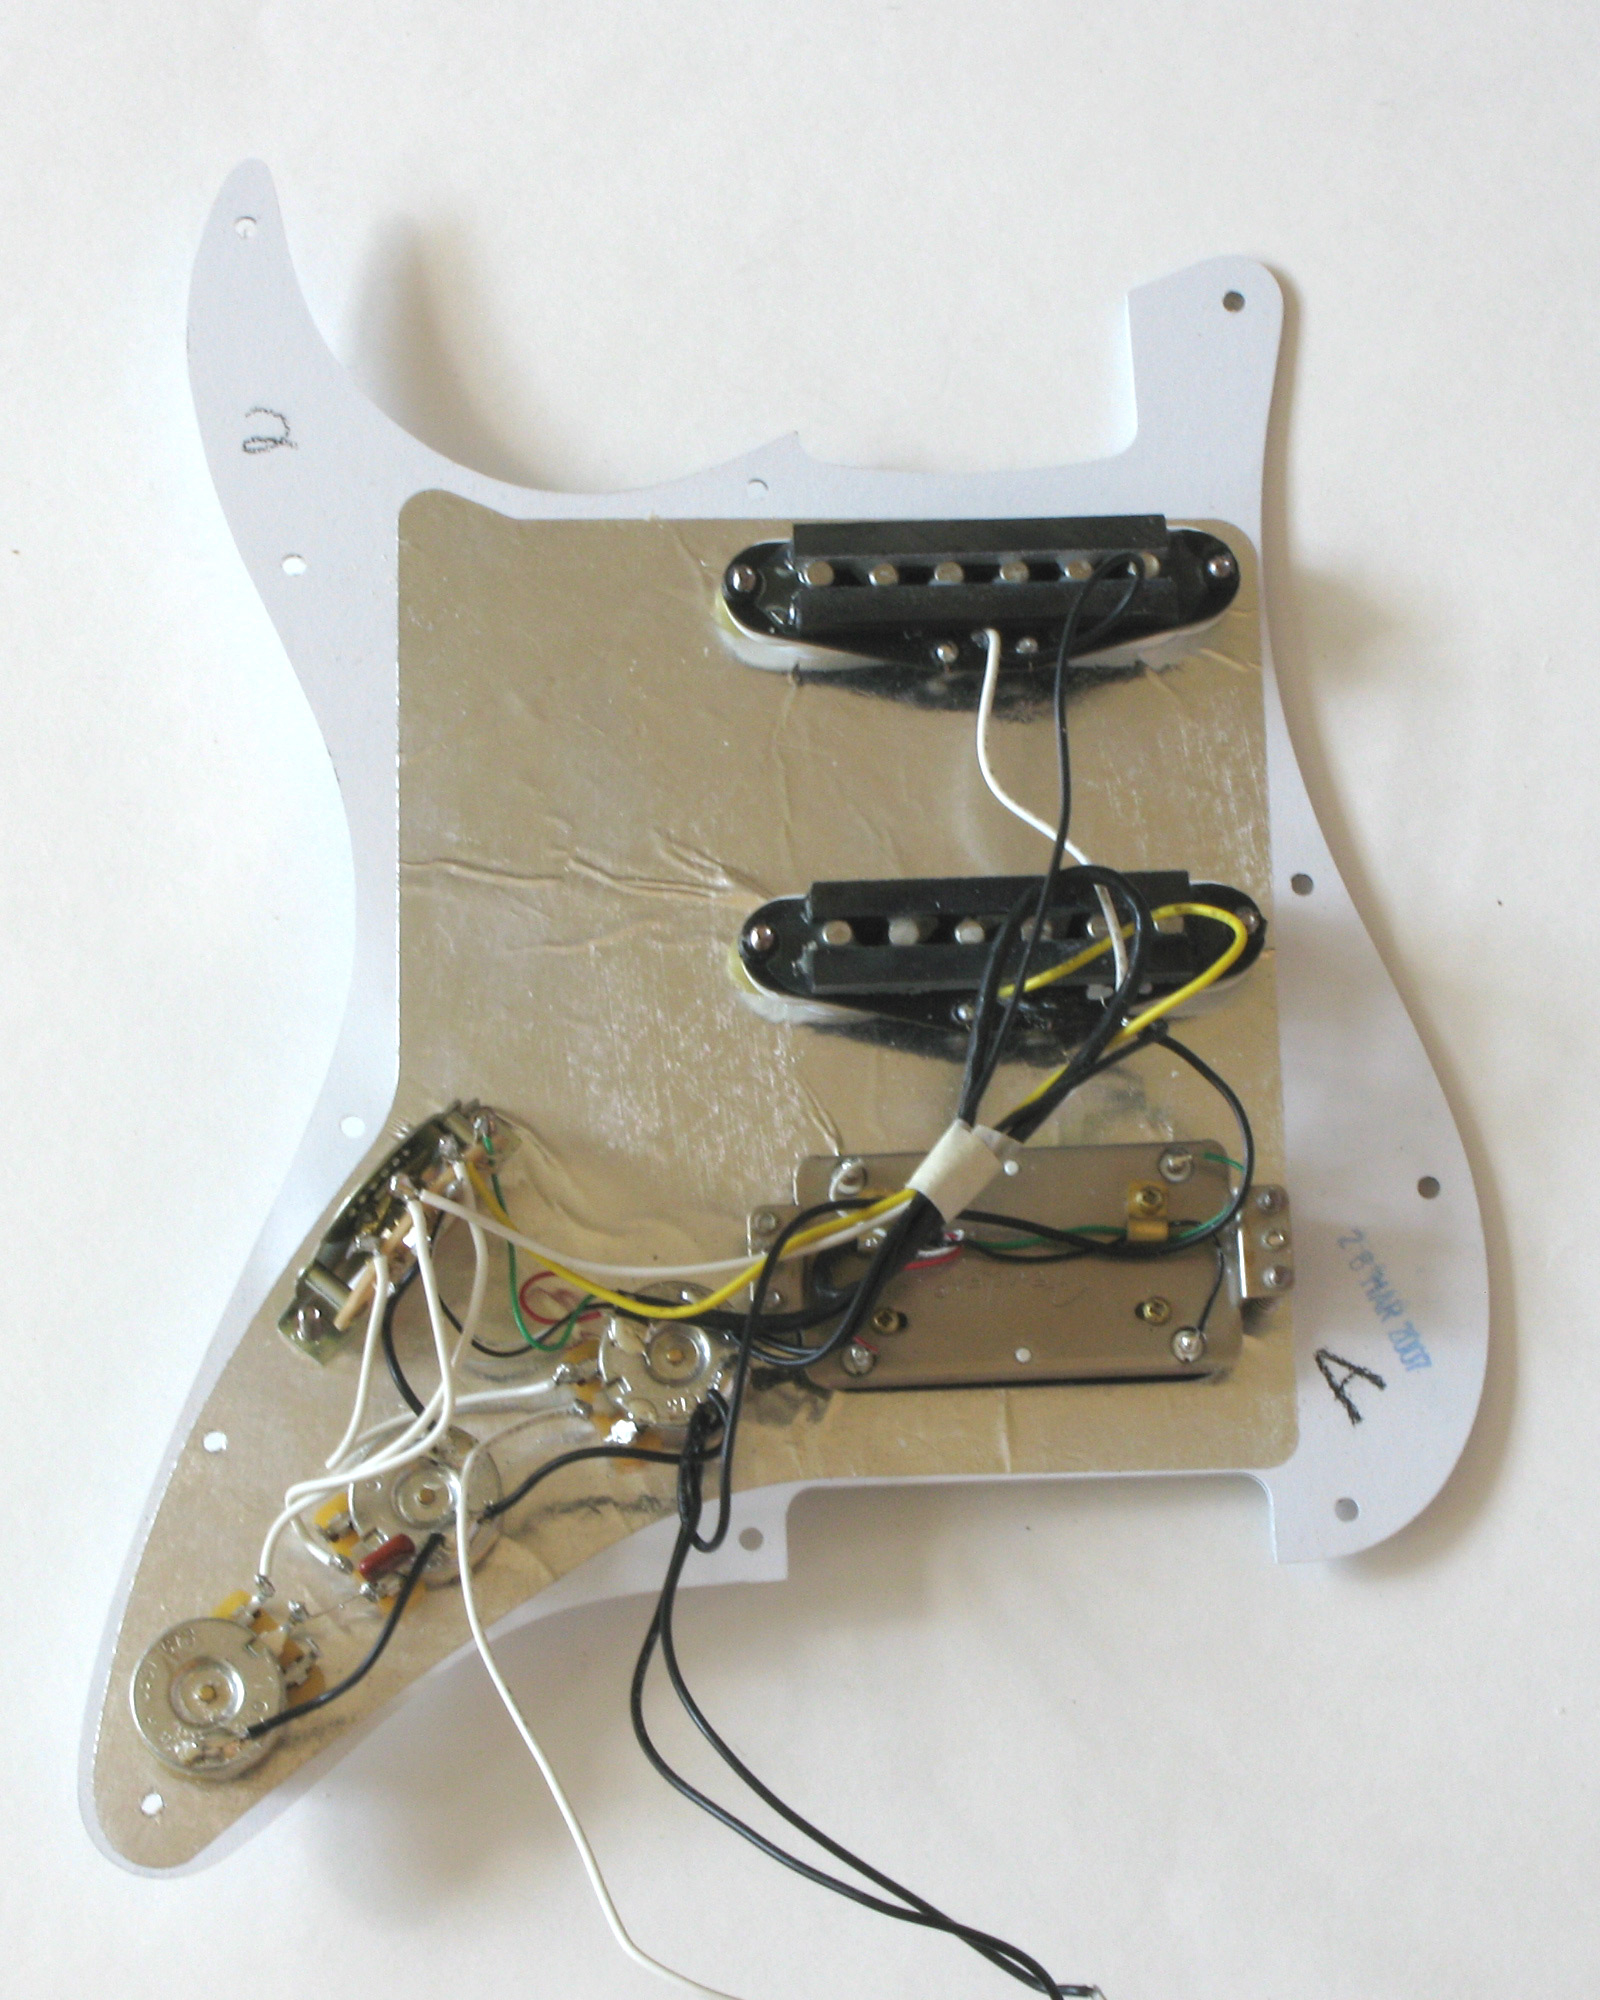 Fender Stratocaster Mexican Hss Pickguard Wiring Diagram - Fender Stratocaster Wiring Diagram